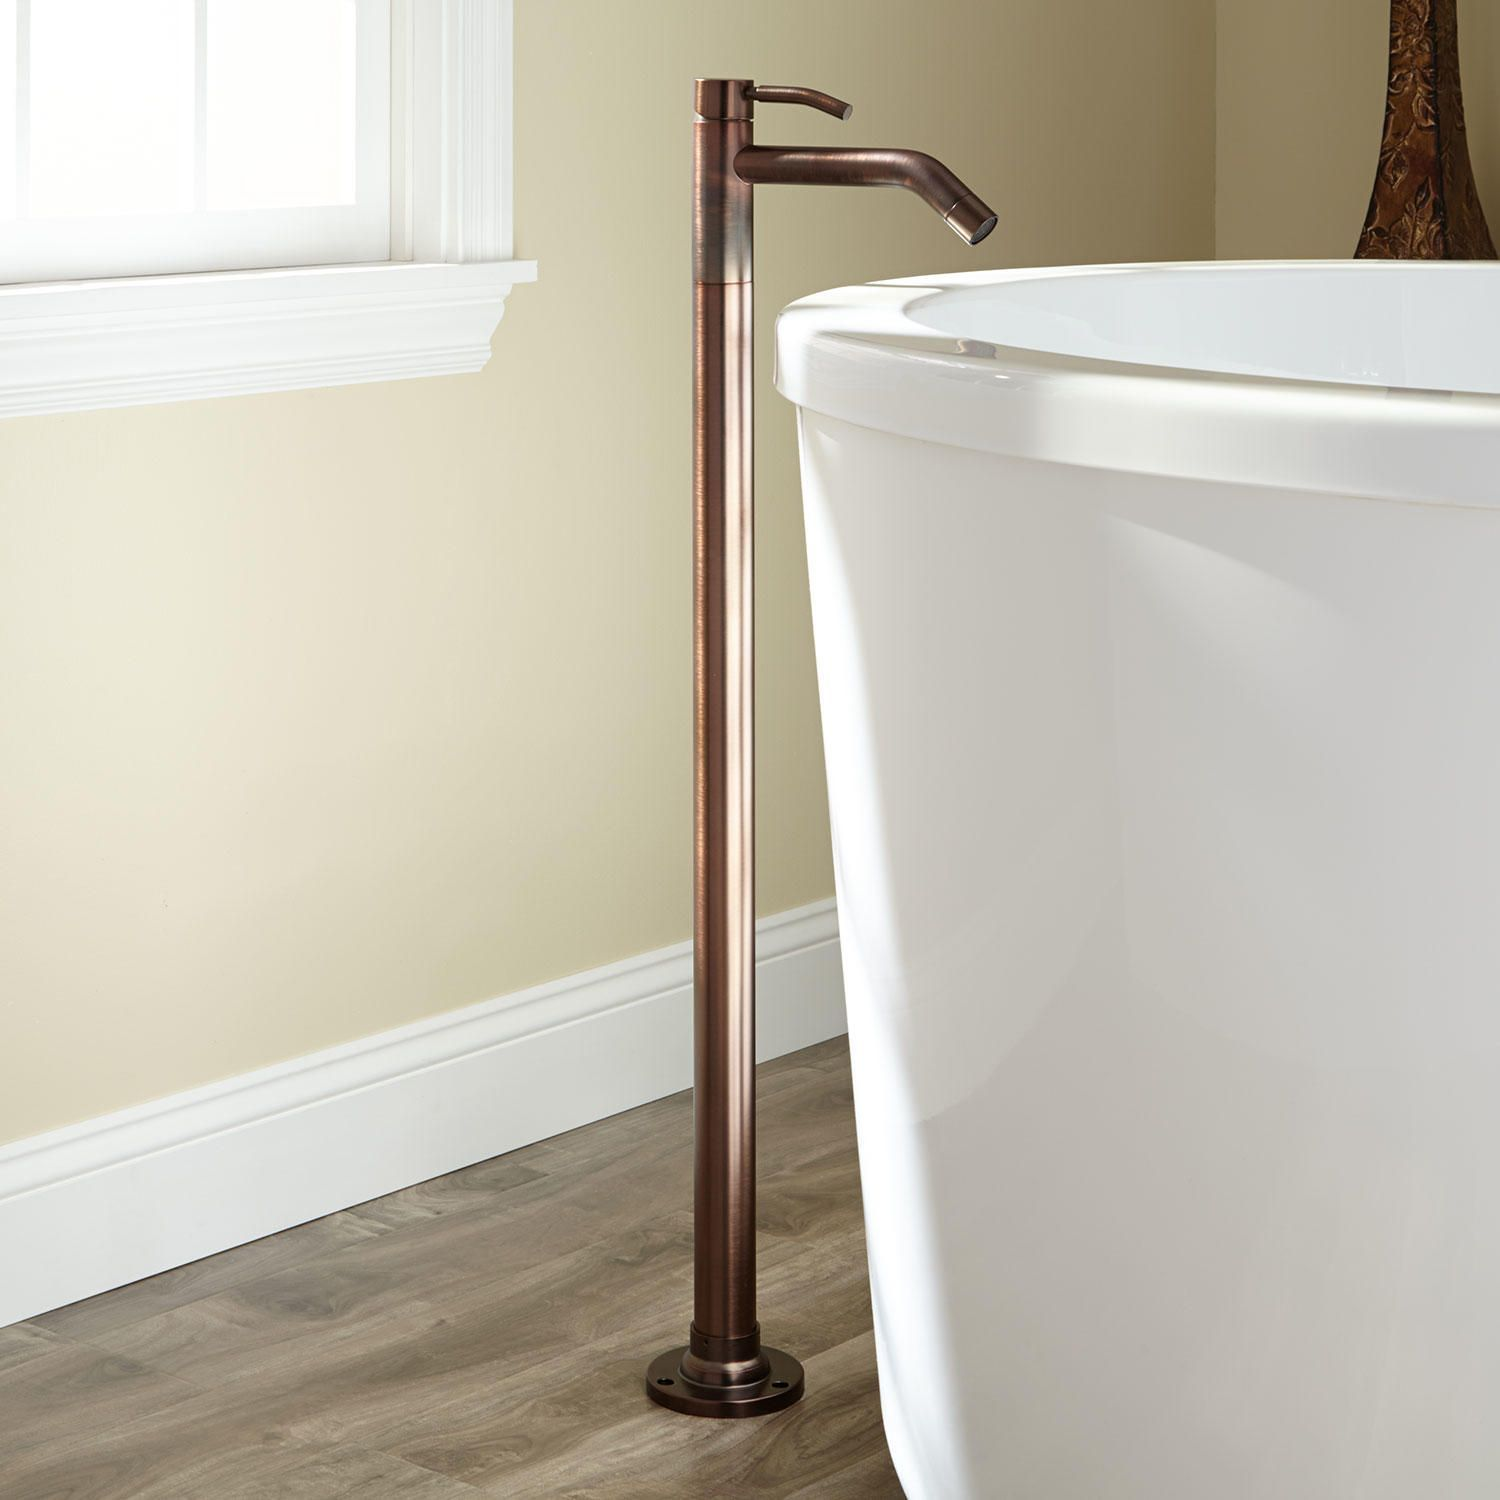 Caol Freestanding Tub Faucet | Freestanding tub, Faucet and Tubs